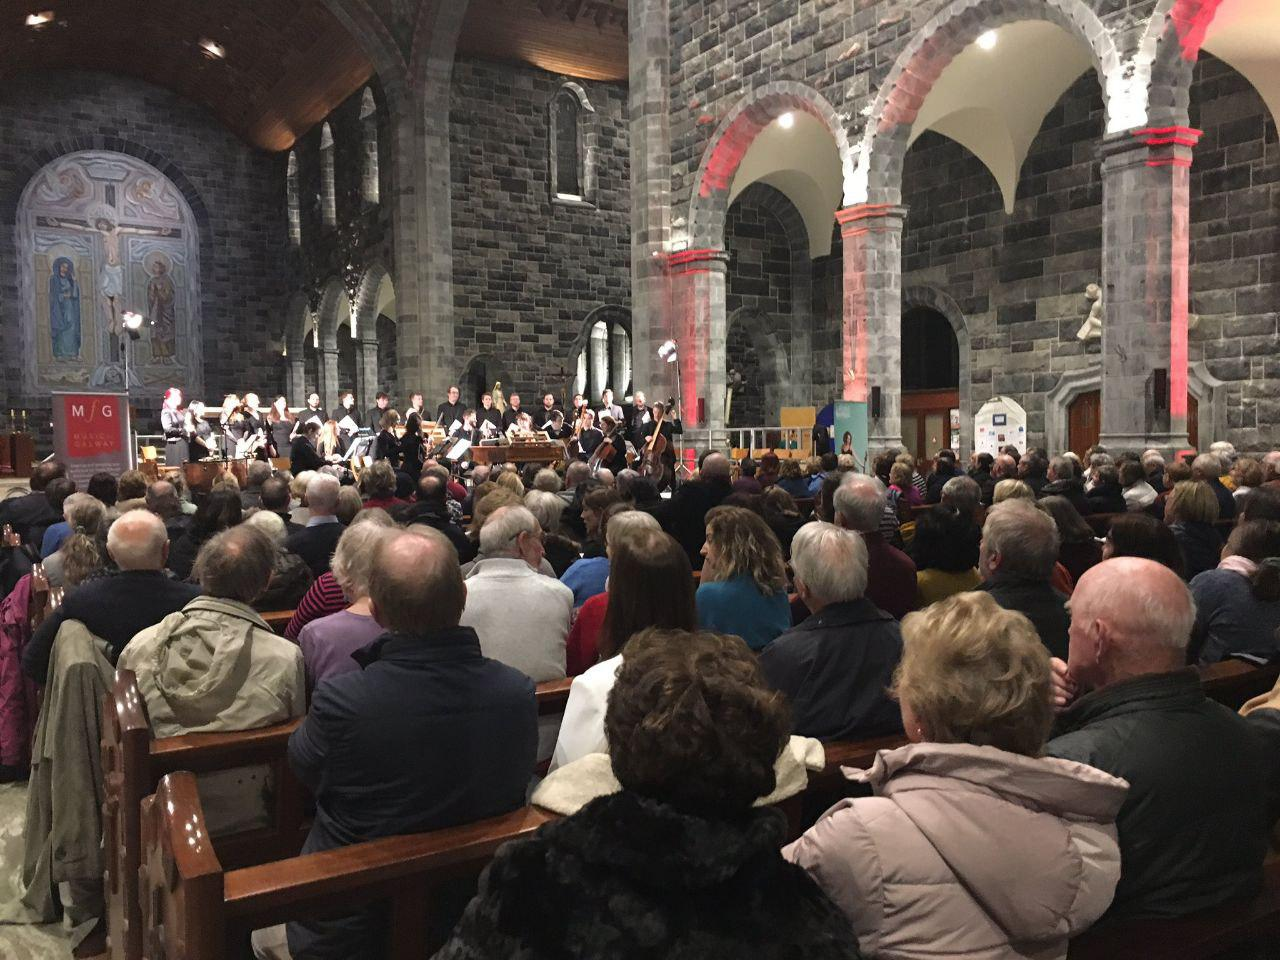 Handel's Messiah view crowd